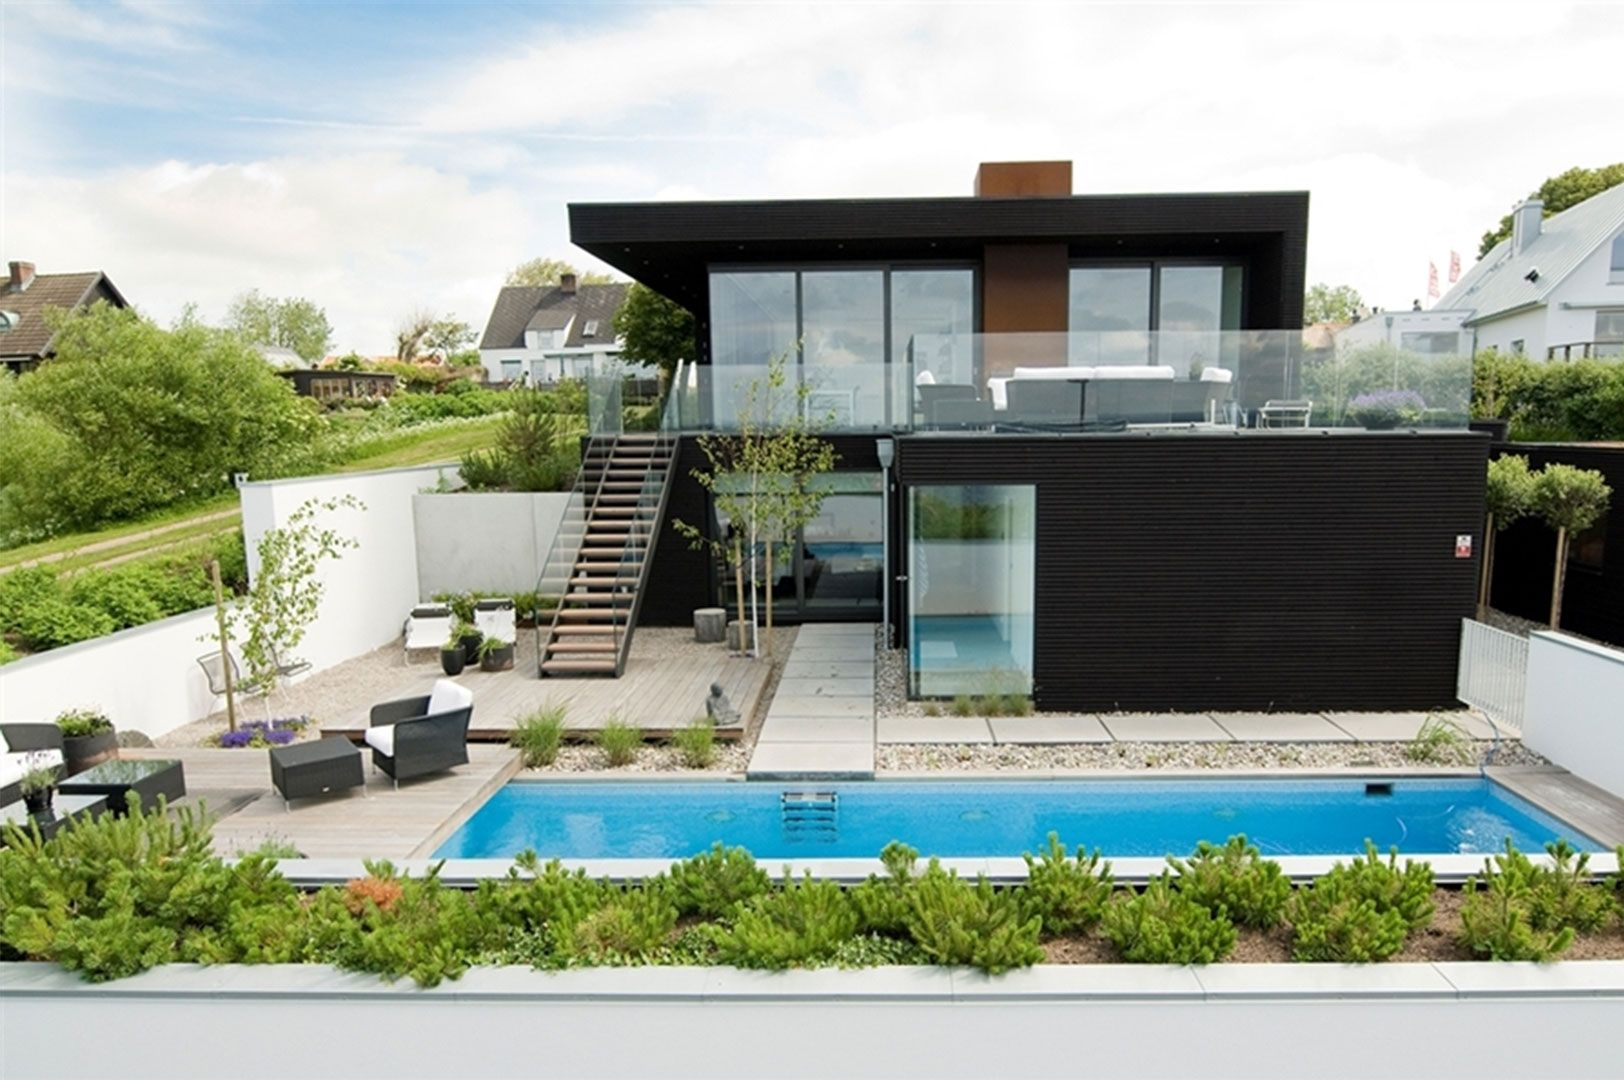 Nilsson Villa Modern Beach House With Black And White Interior Design In  Sweden   Homesthetics   Inspiring Ideas For Your Home.